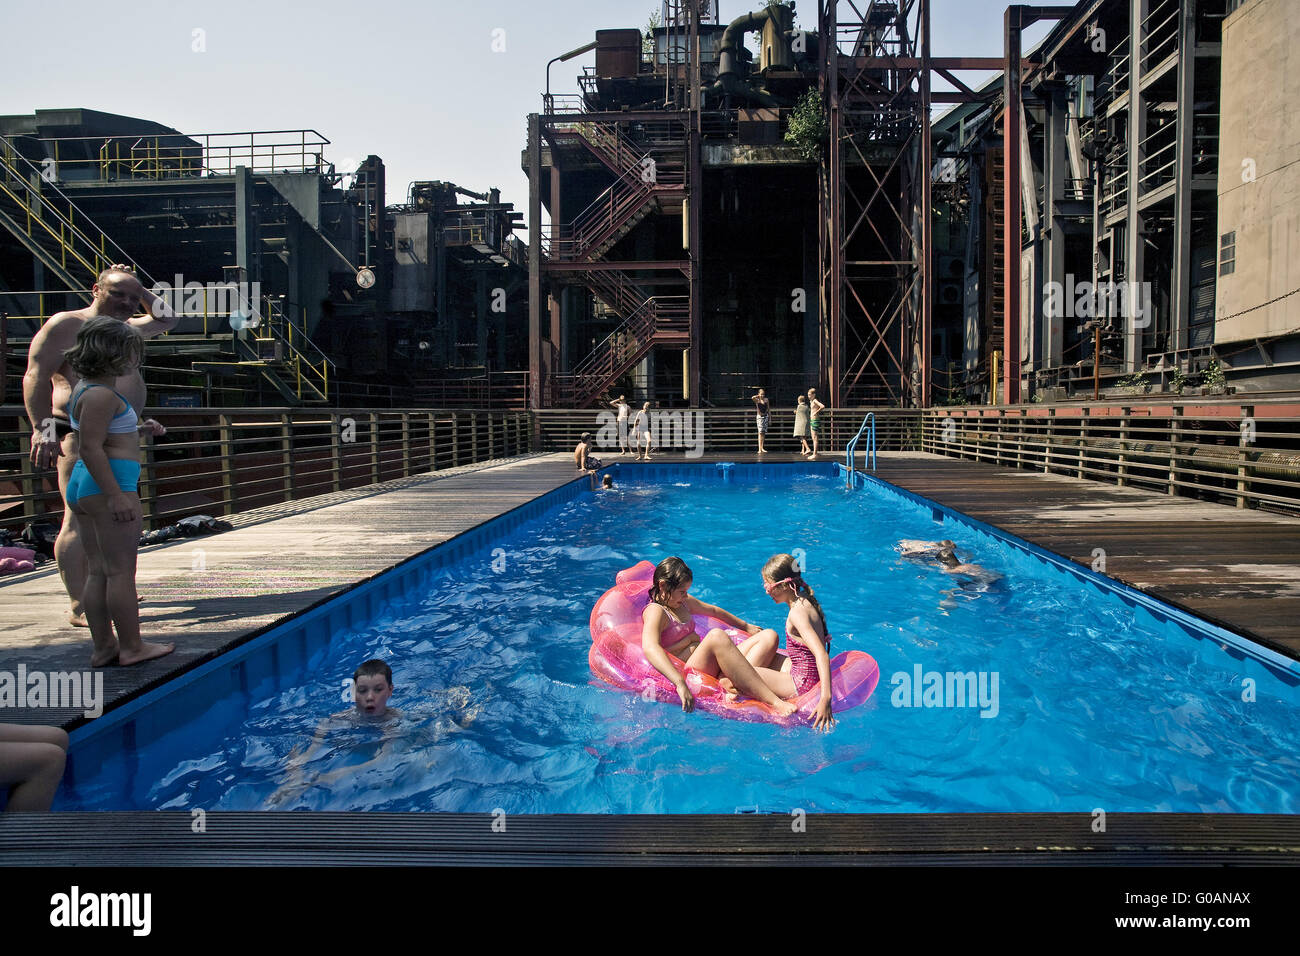 Factory swimming pool, Zollverein, Essen, Germany - Stock Image